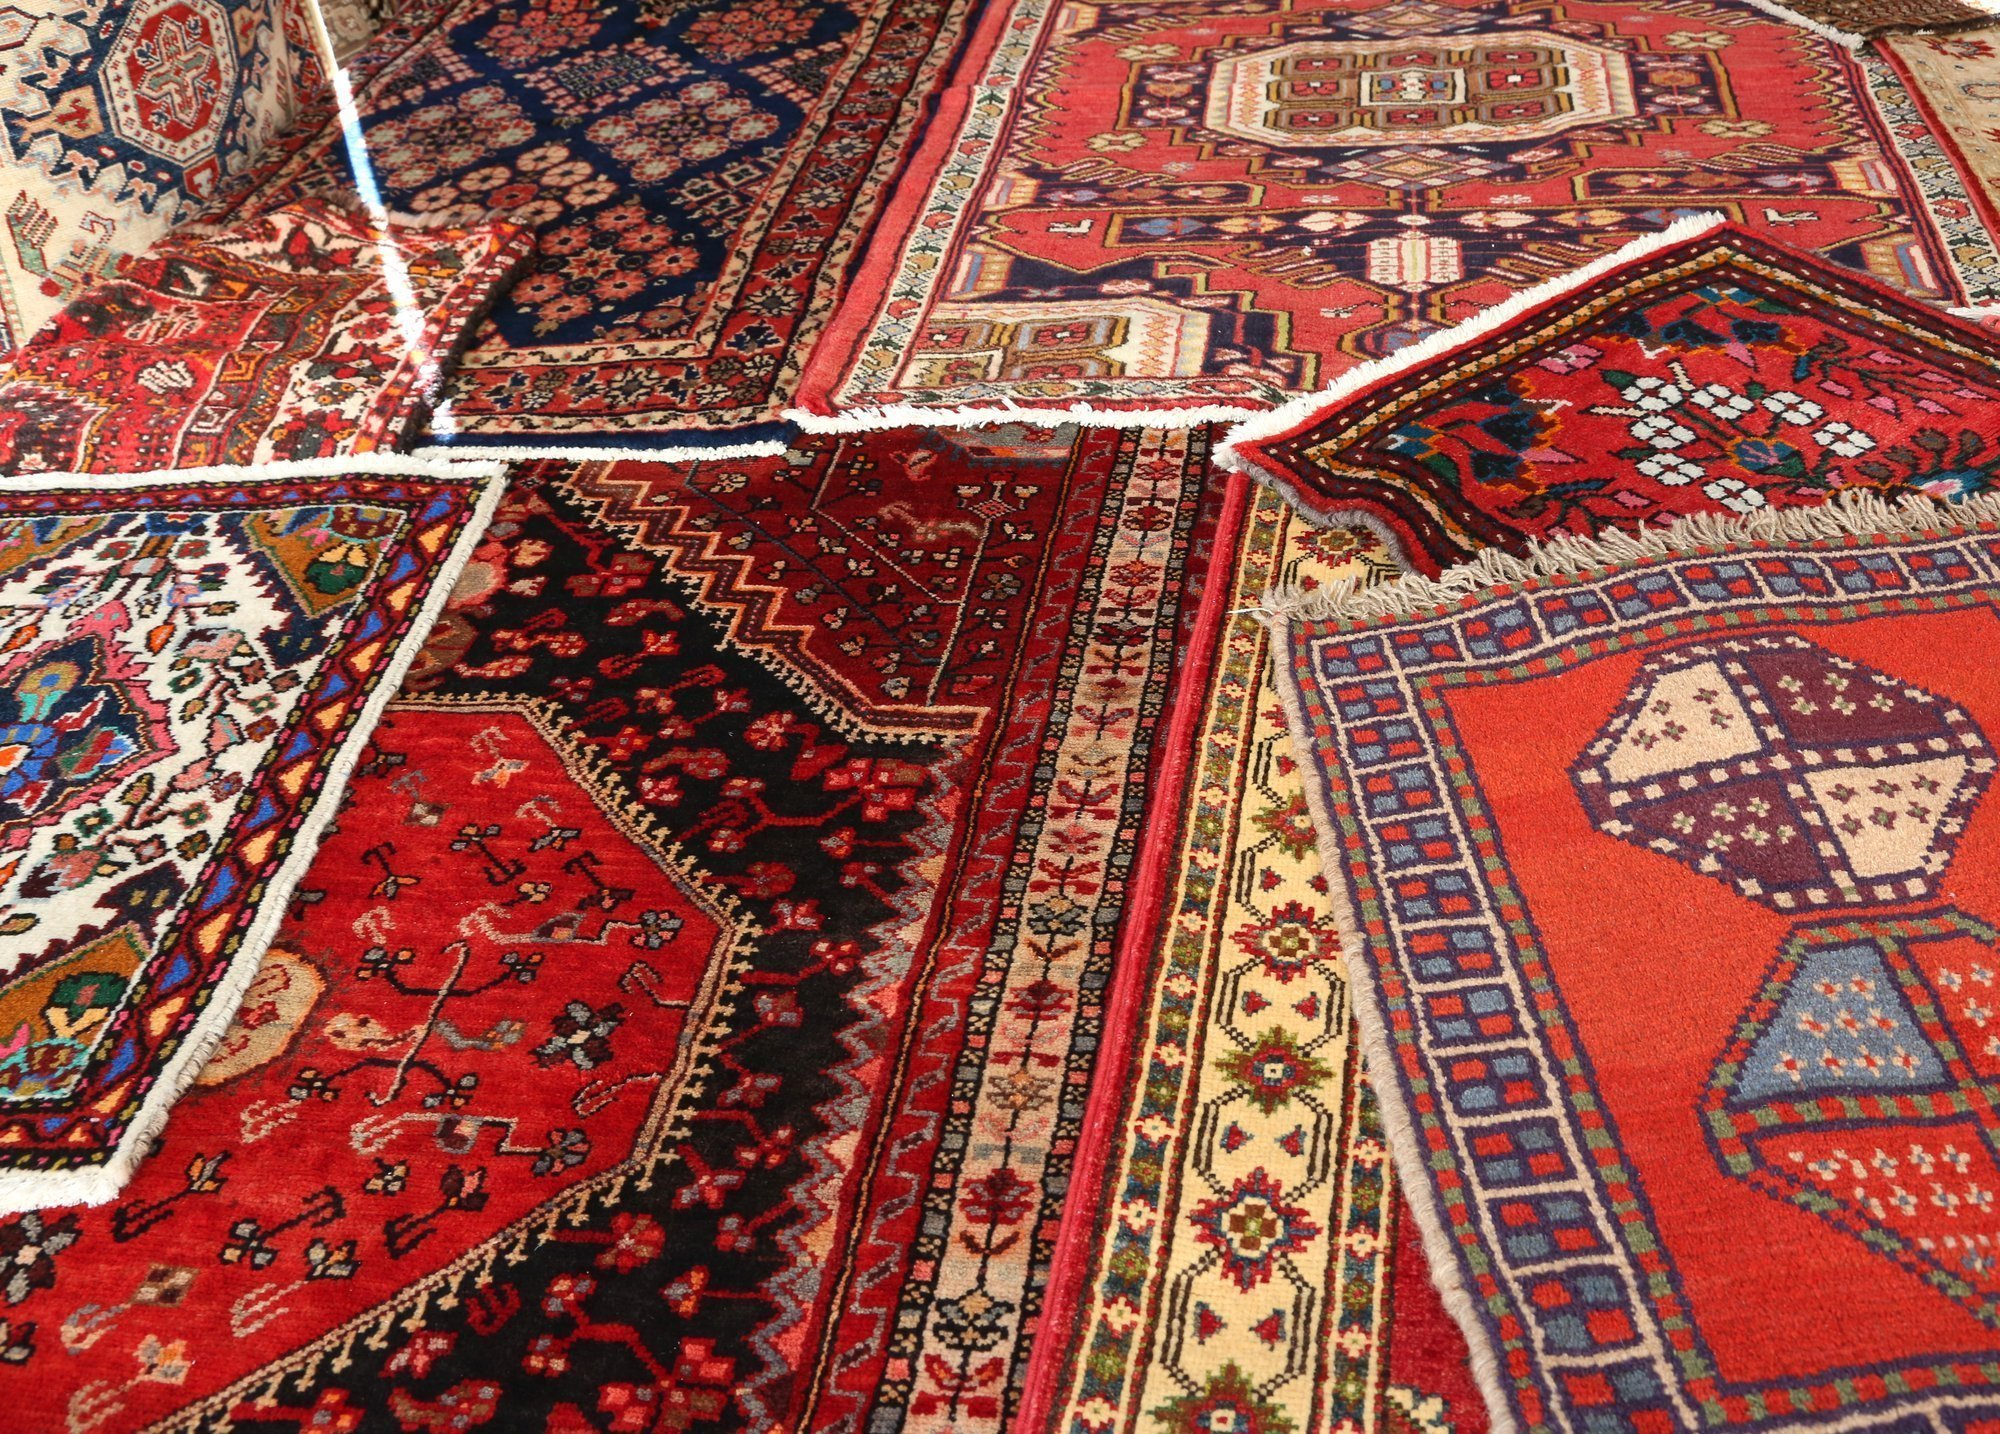 How to Choose Artisan Rugs for Your Home